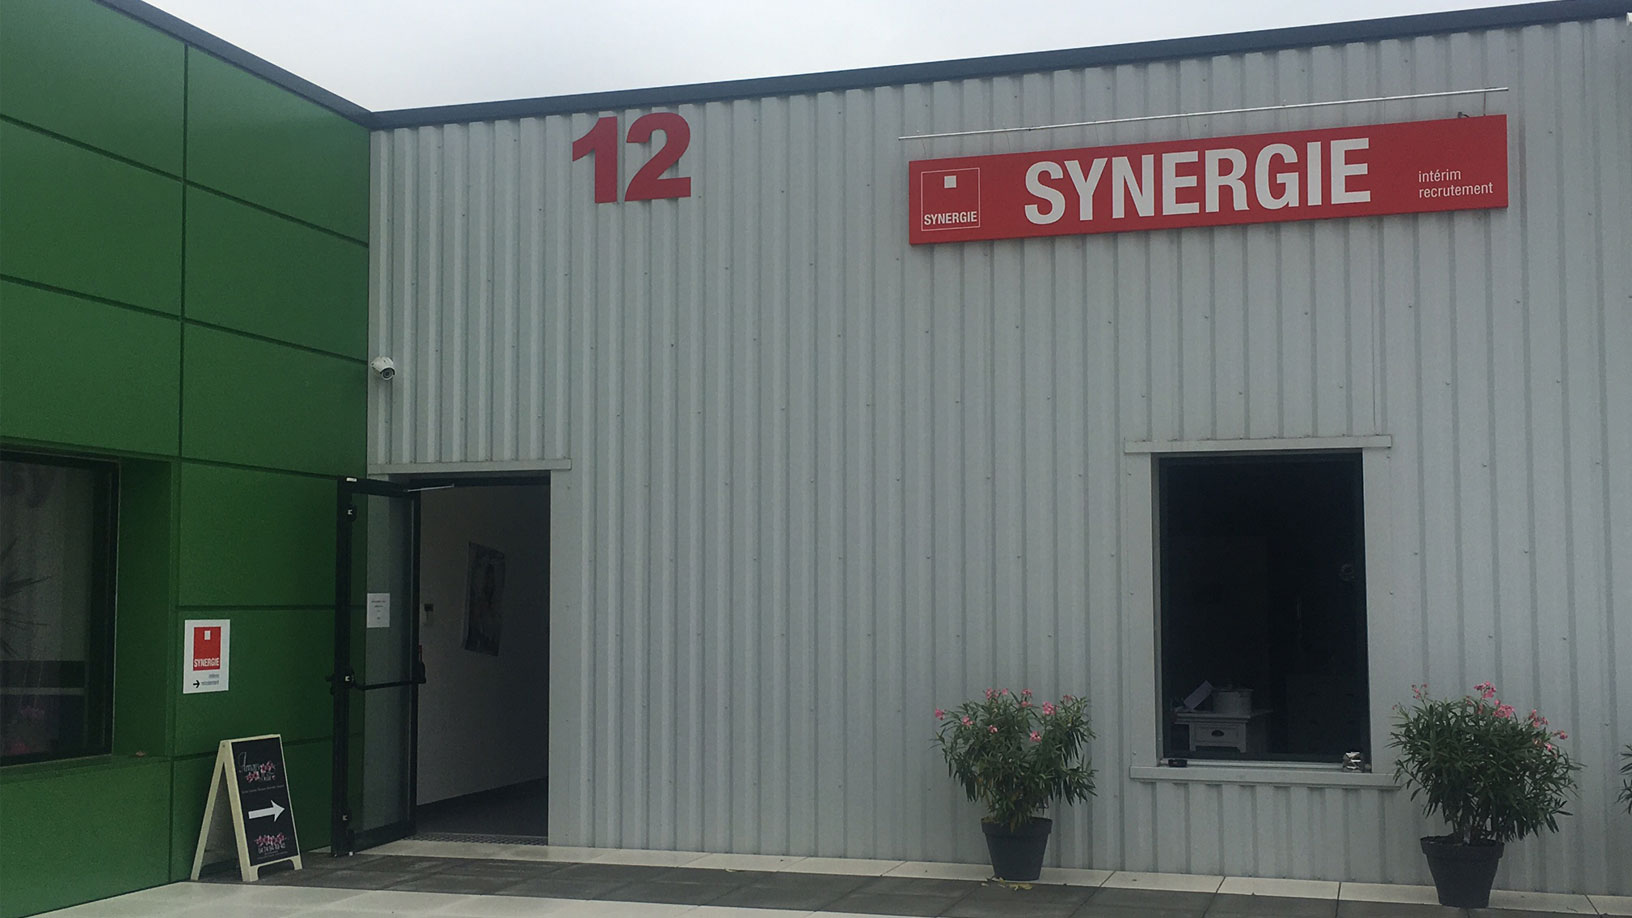 Agence interim Synergie St Quentin Fallavier